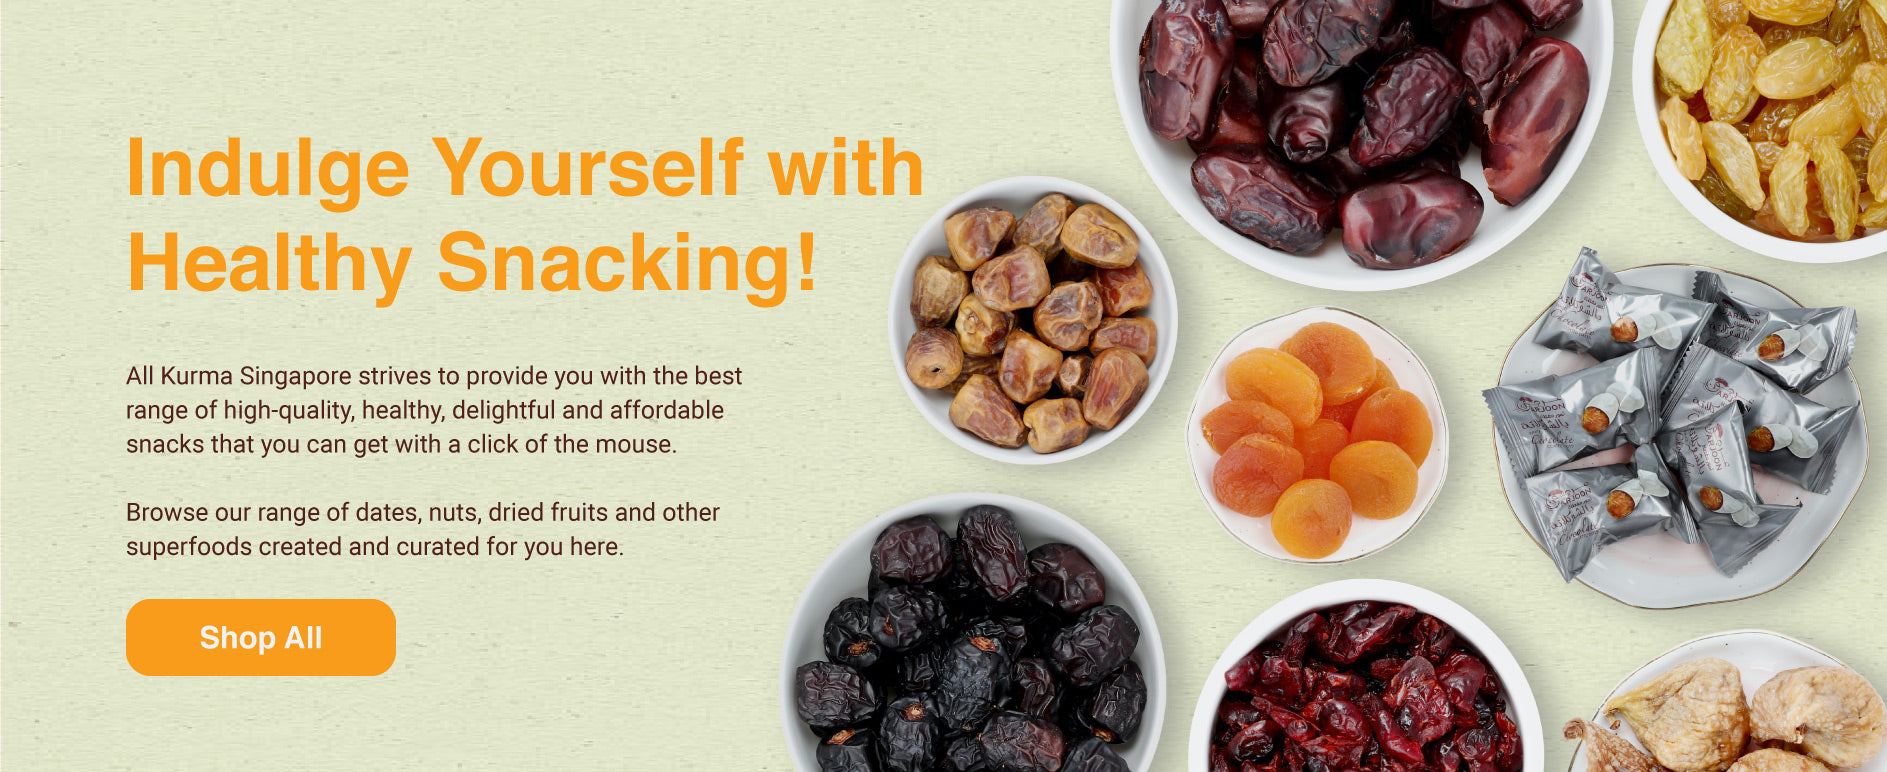 Healthy Snacks Singapore, Buy Healthy Snacks Singapore, Dried Fruits, Dried Nuts, Dates, Medjool Dates, Ajwa Dates, Healthy Snacks Singapore, Halal Snacks Singapore, Healthy Halal Snacks, Halal Snacks Online